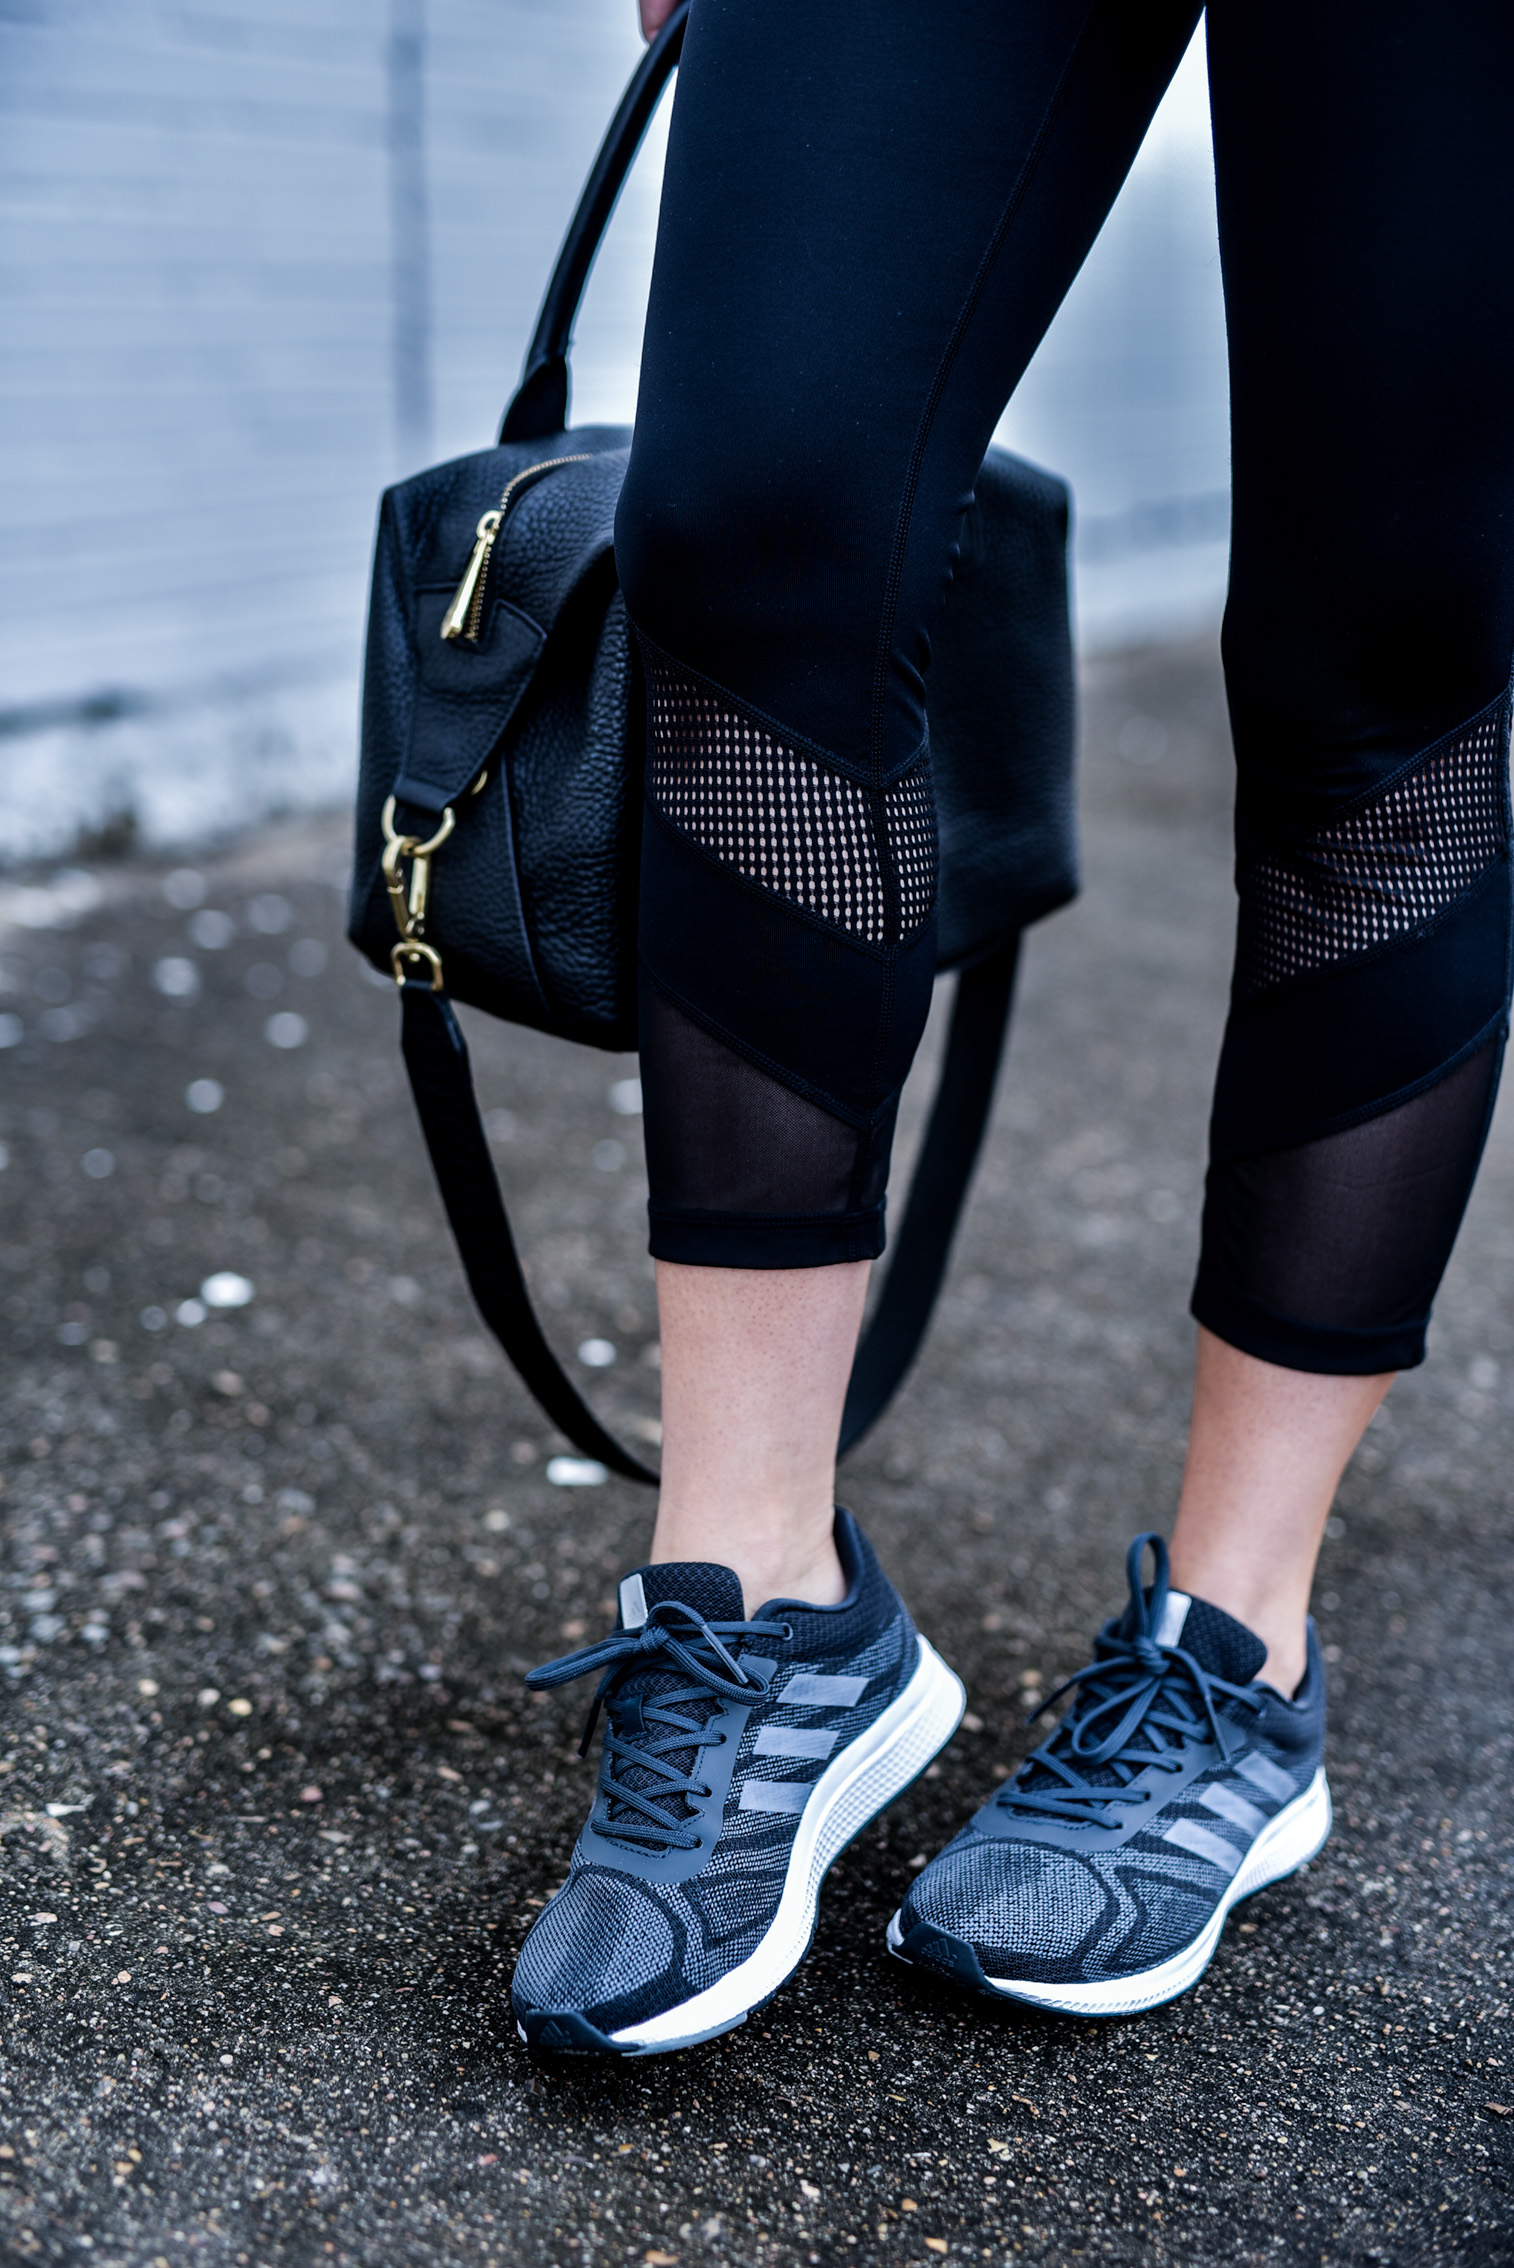 Houston fashion and style blogger tiffany Jais wearing cutout mesh leggings and grey addidas sneakers, click to read more | What's trending in women's fitness wear